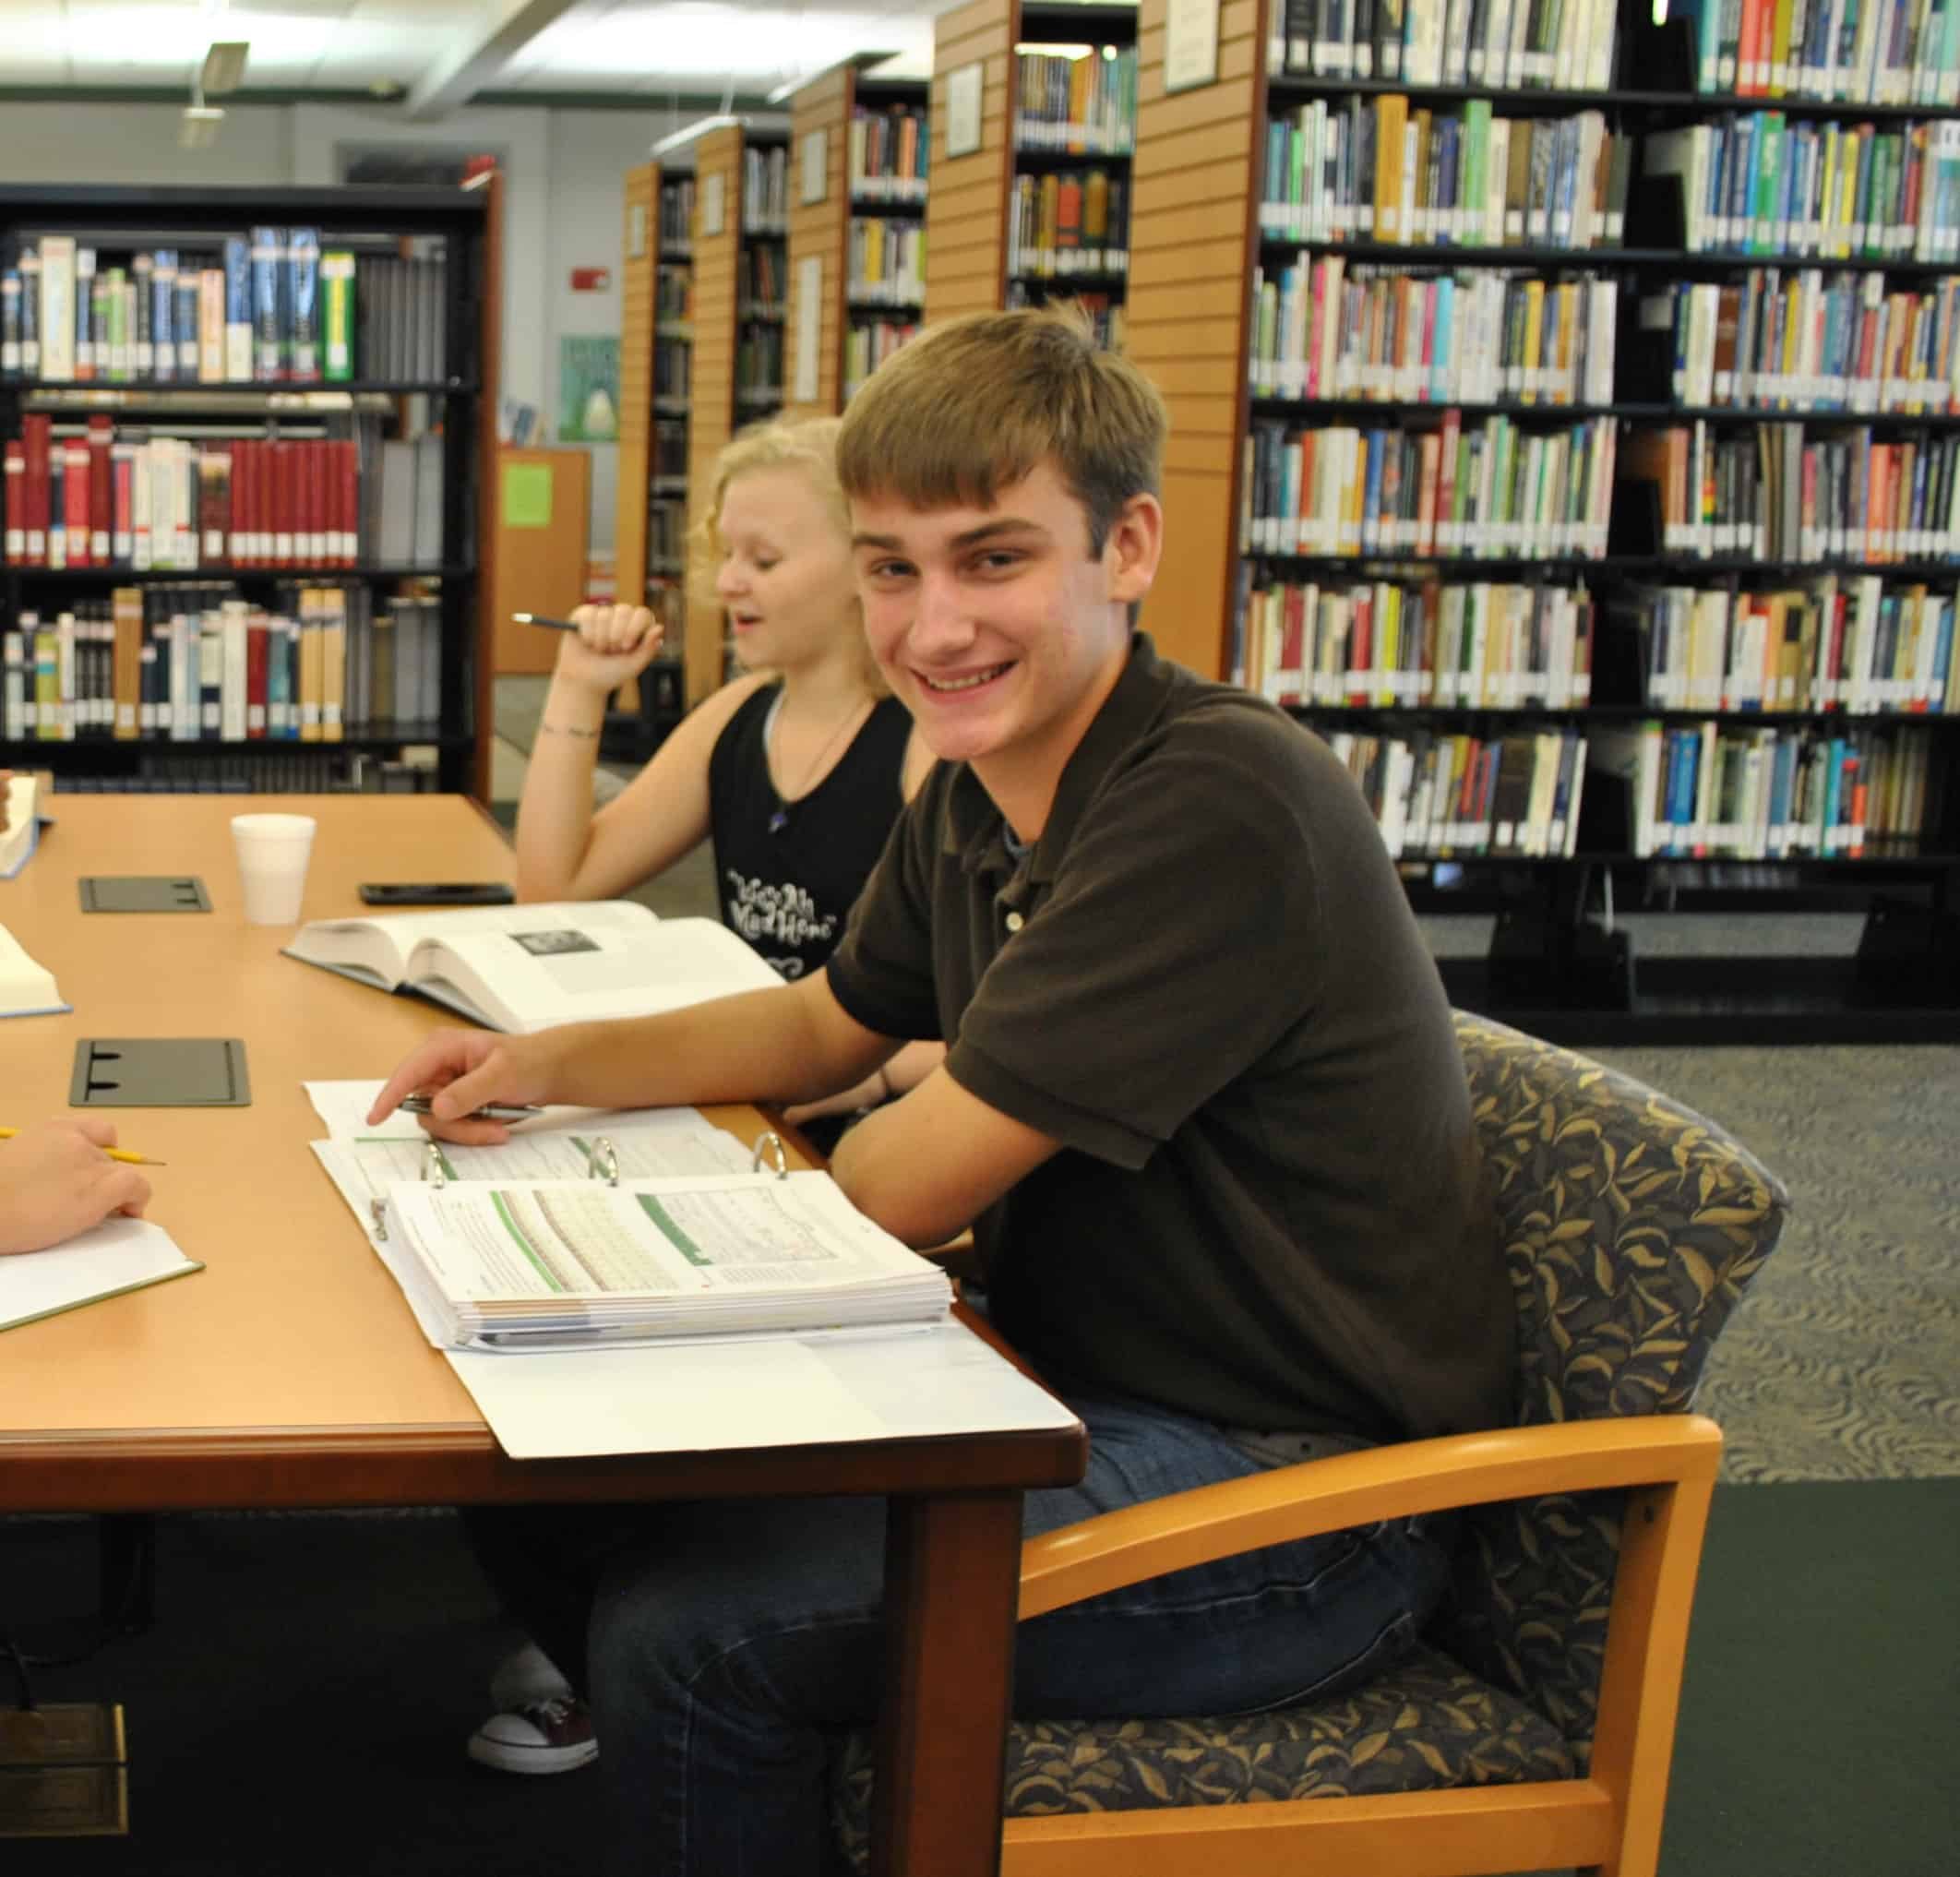 Noah Brack, sitting at table in library smiling.